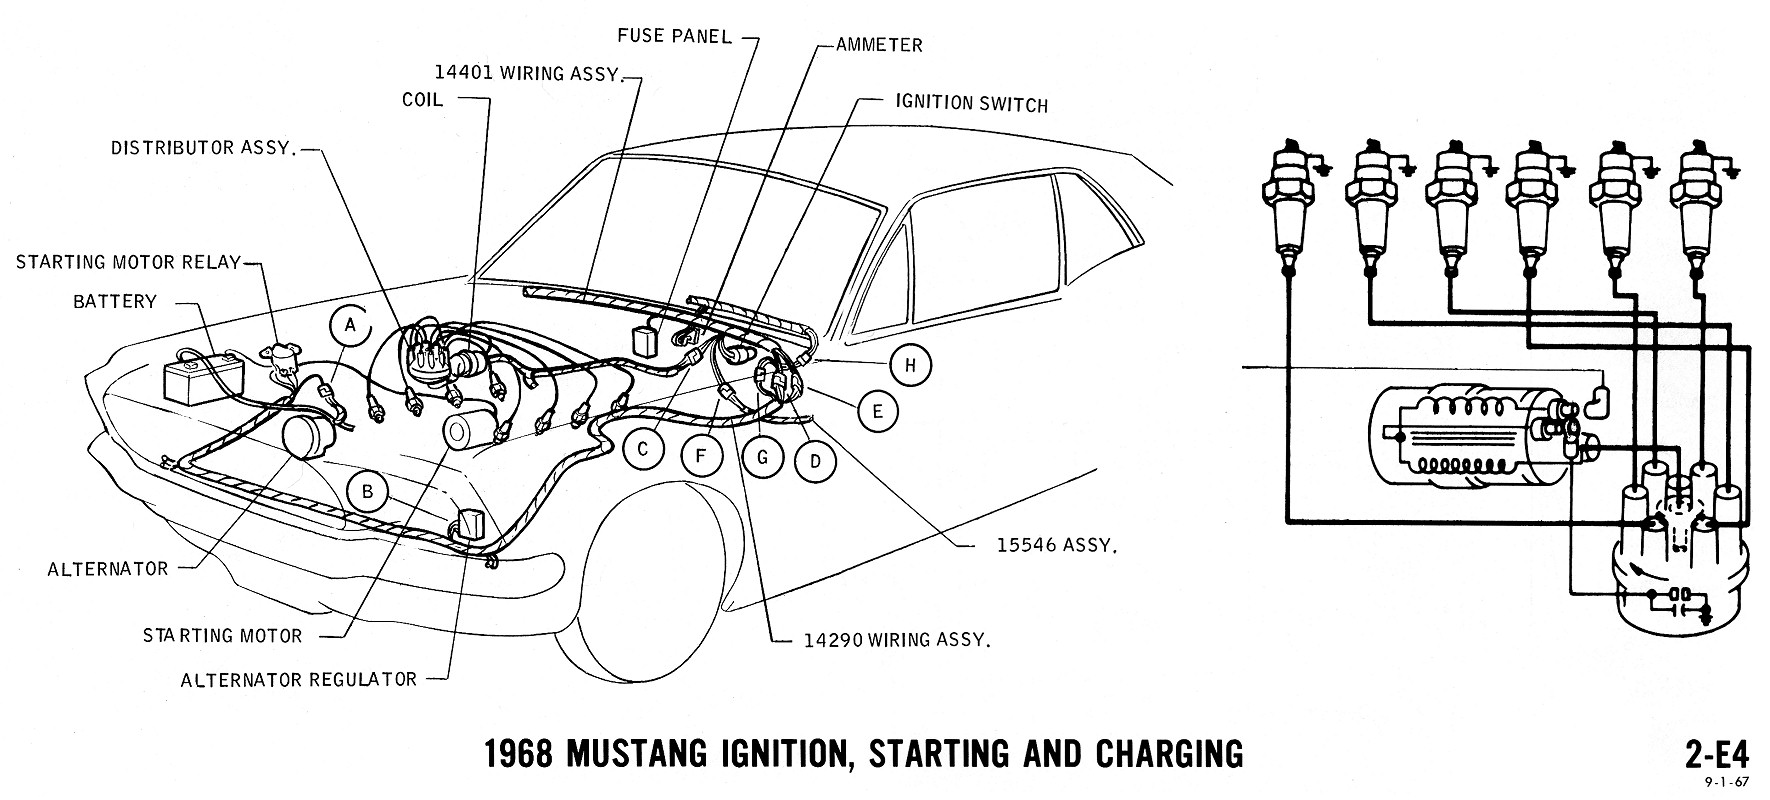 1968 mustang wiring diagram ignition starting charging 2 1968 mustang wiring diagrams and vacuum schematics average joe 65 mustang ignition wiring diagram at mifinder.co